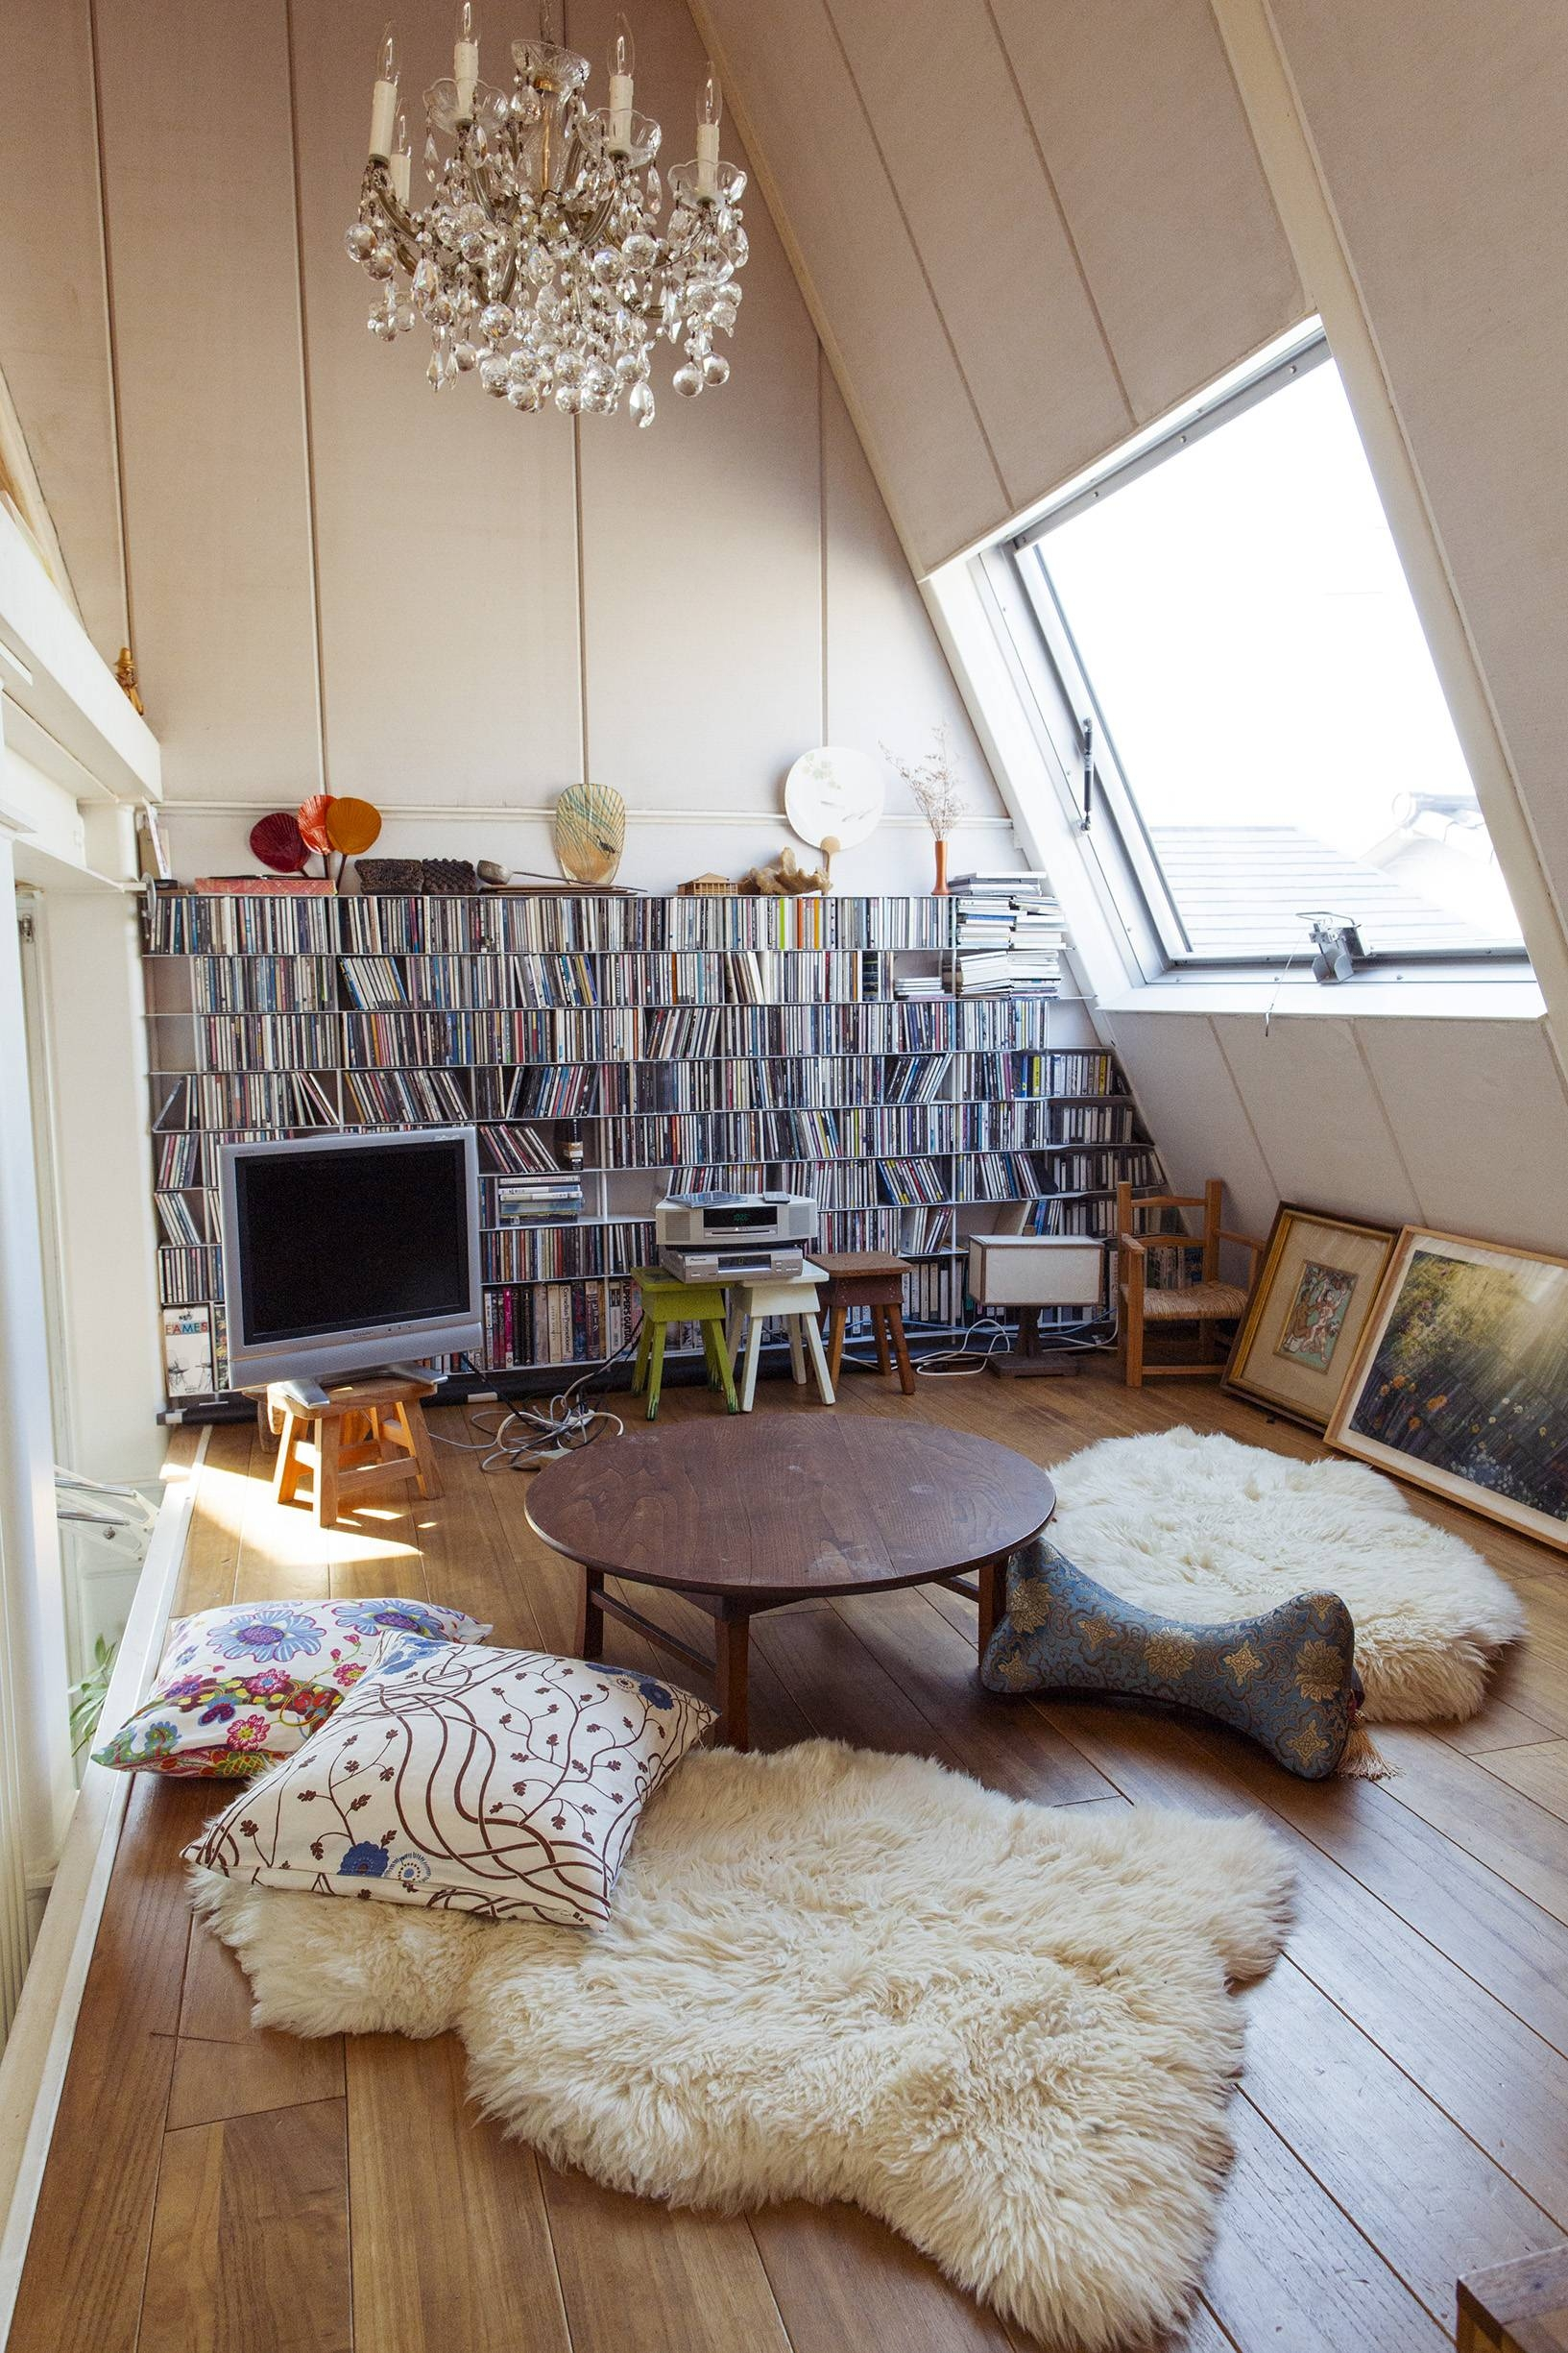 Charming Cozy Floor Seating Ideas That Are So Comfortable And Easy To Make With Floor  Seating Ideas